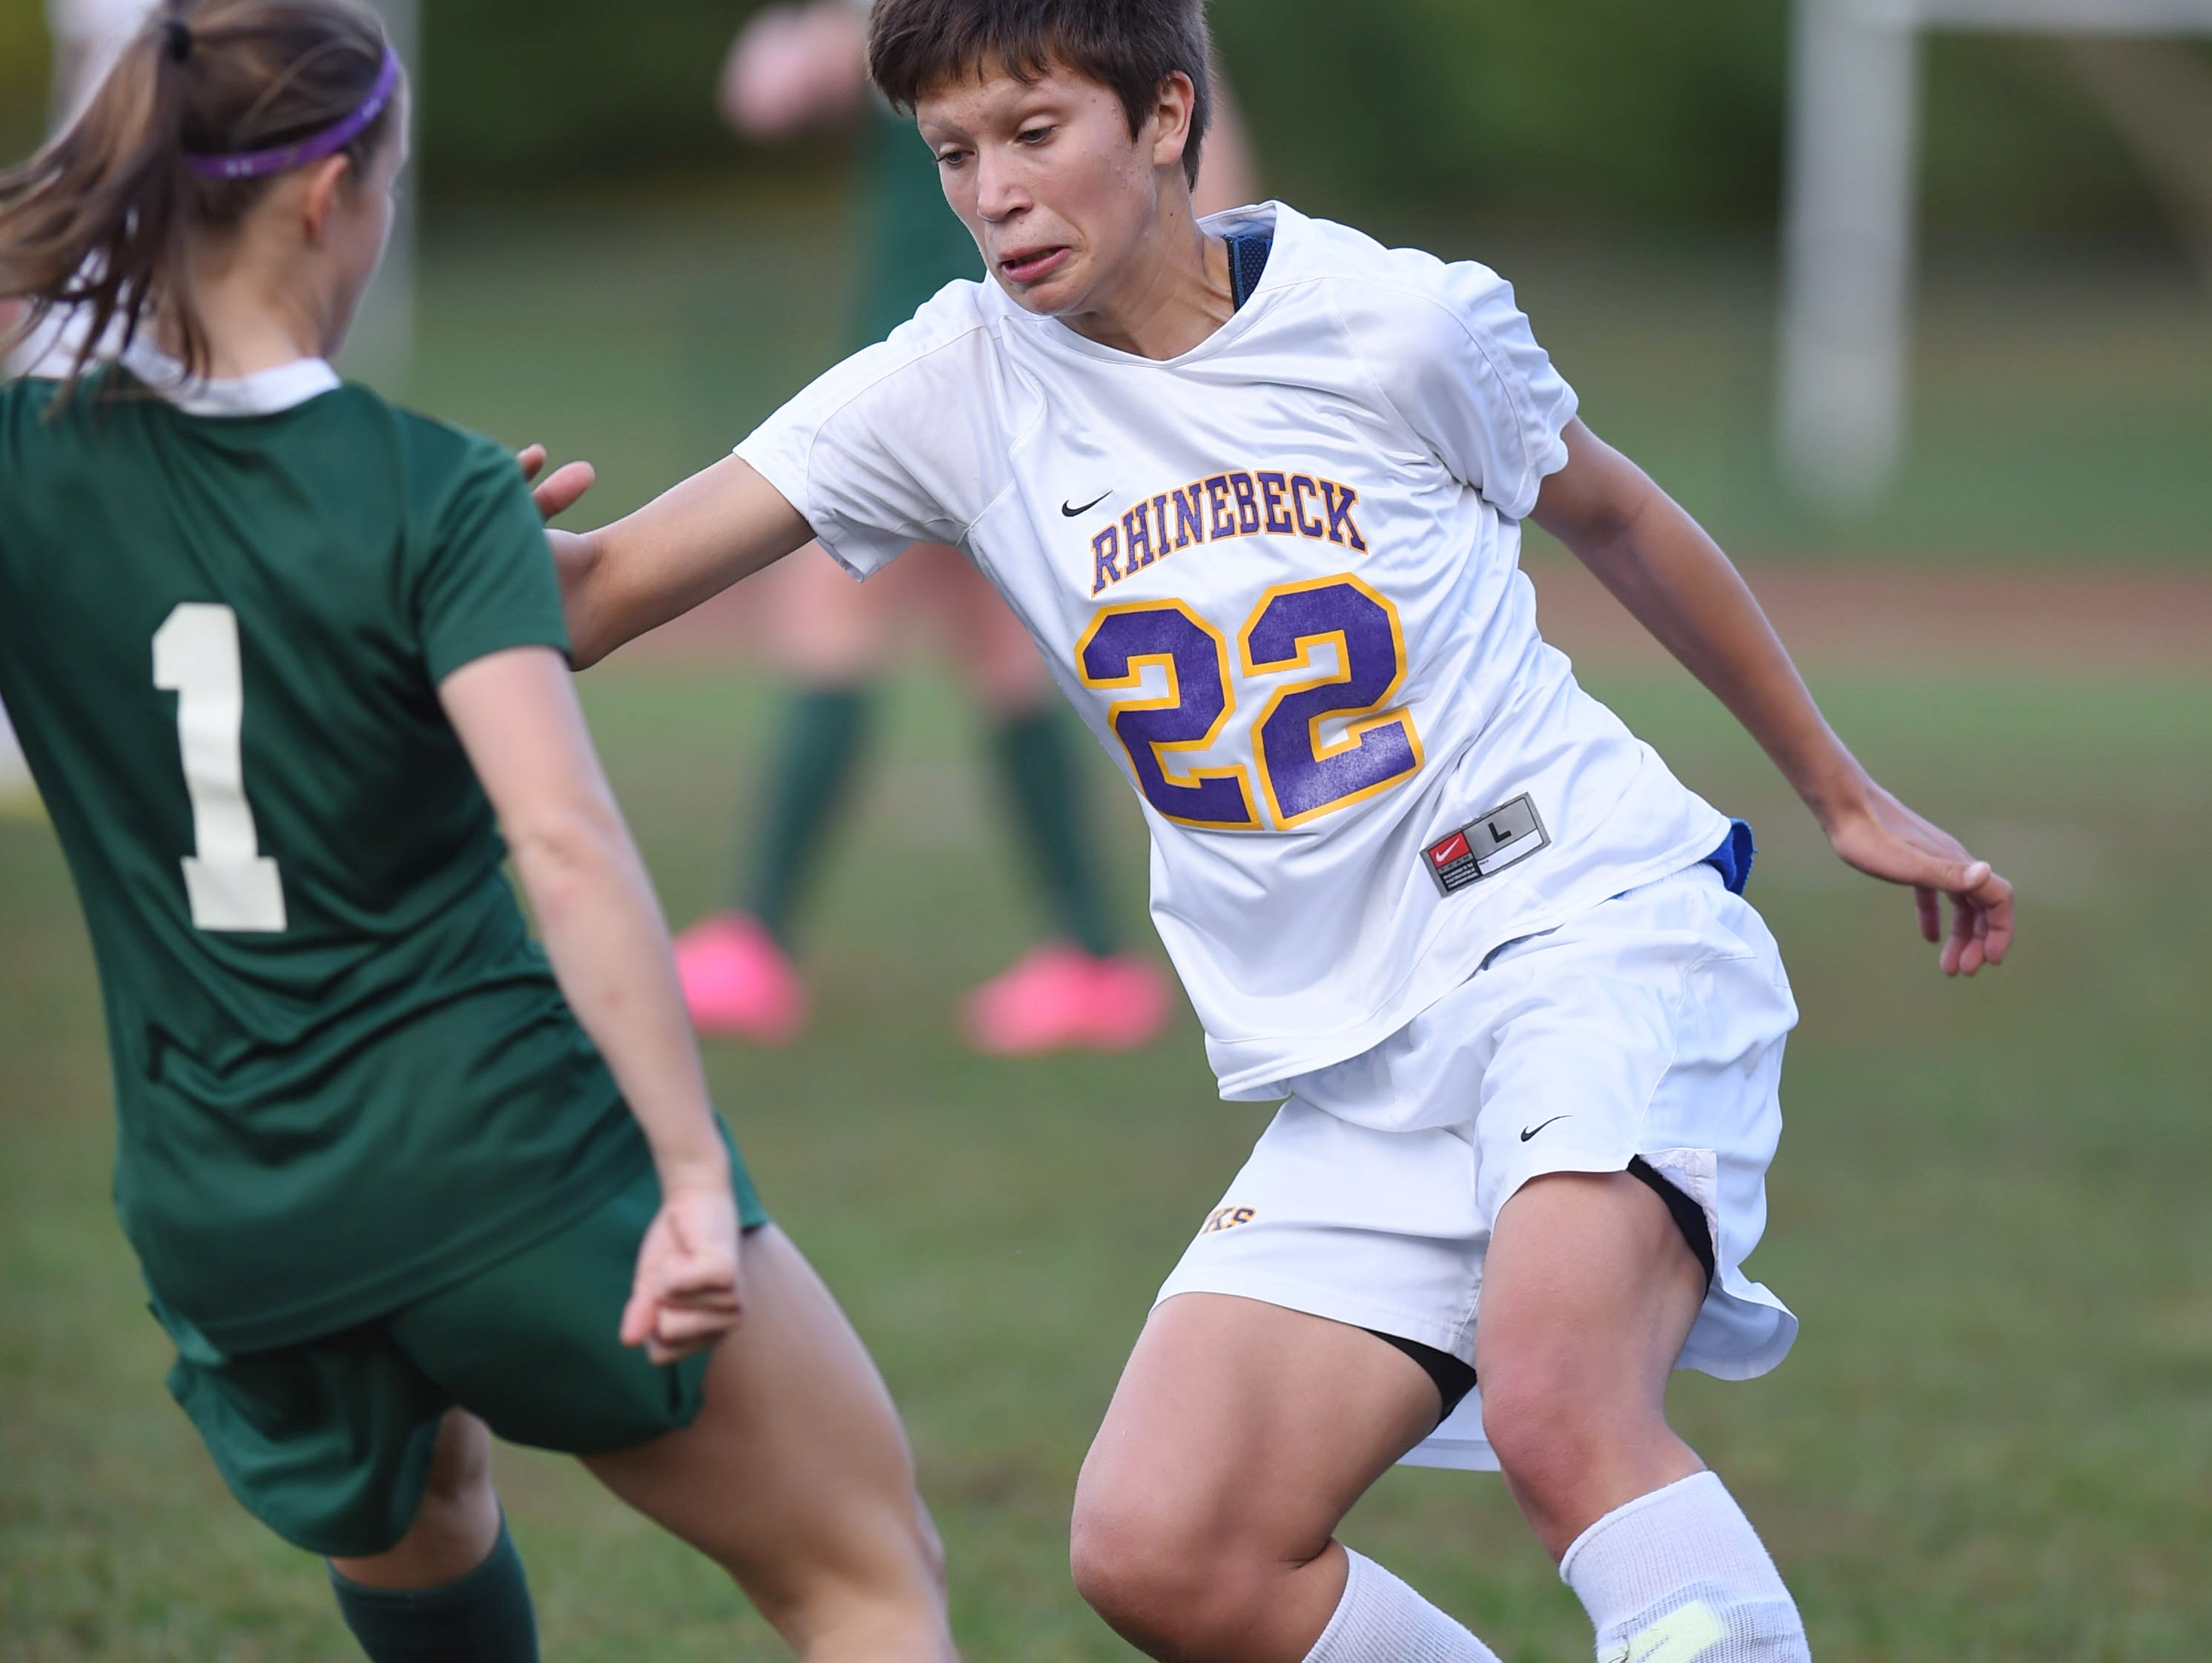 Rhinebeck High School's Michelle Giamportone makes a move on a Spackenkill defender on Wednesday.